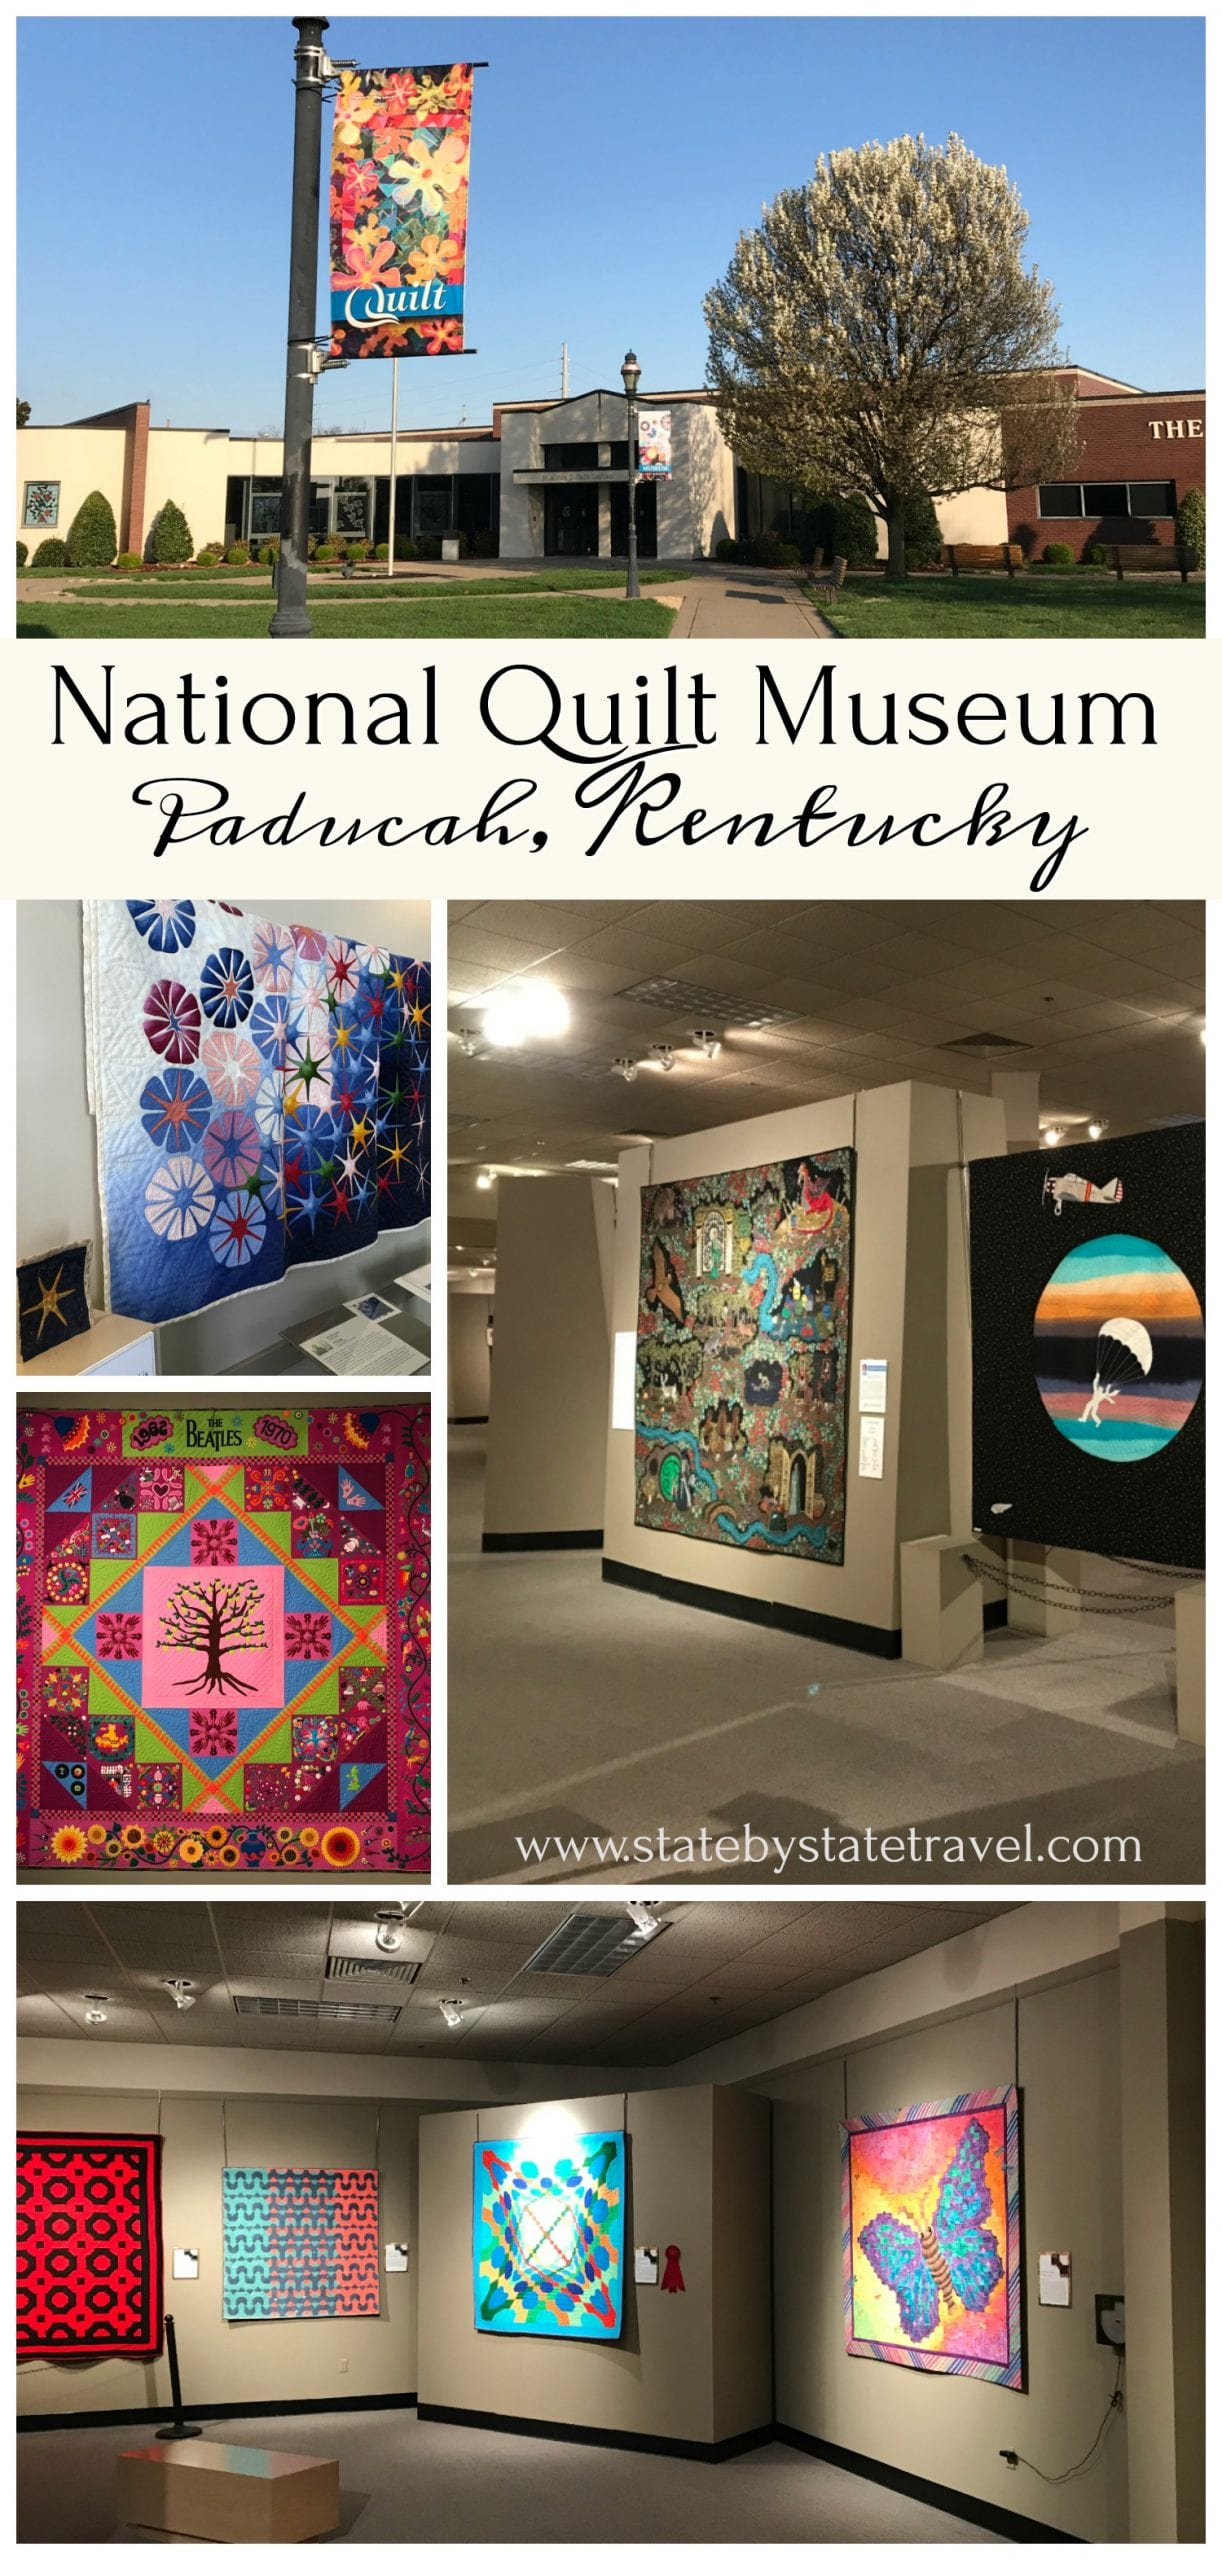 What is it about quilts that just makes people feel warm and comfortable and connects generations? Recently we had the opportunity to visit the National Quilt Museum in Paducah, Kentucky. Whether you love quilts already or just appreciate the work of skilled artists, the Quilt Museum needs to be on your list! #quilts #quilting #quiltmuseum #Kentucky #KYtravel #paducahcreativecity #creativepaducah #artmuseum #museum